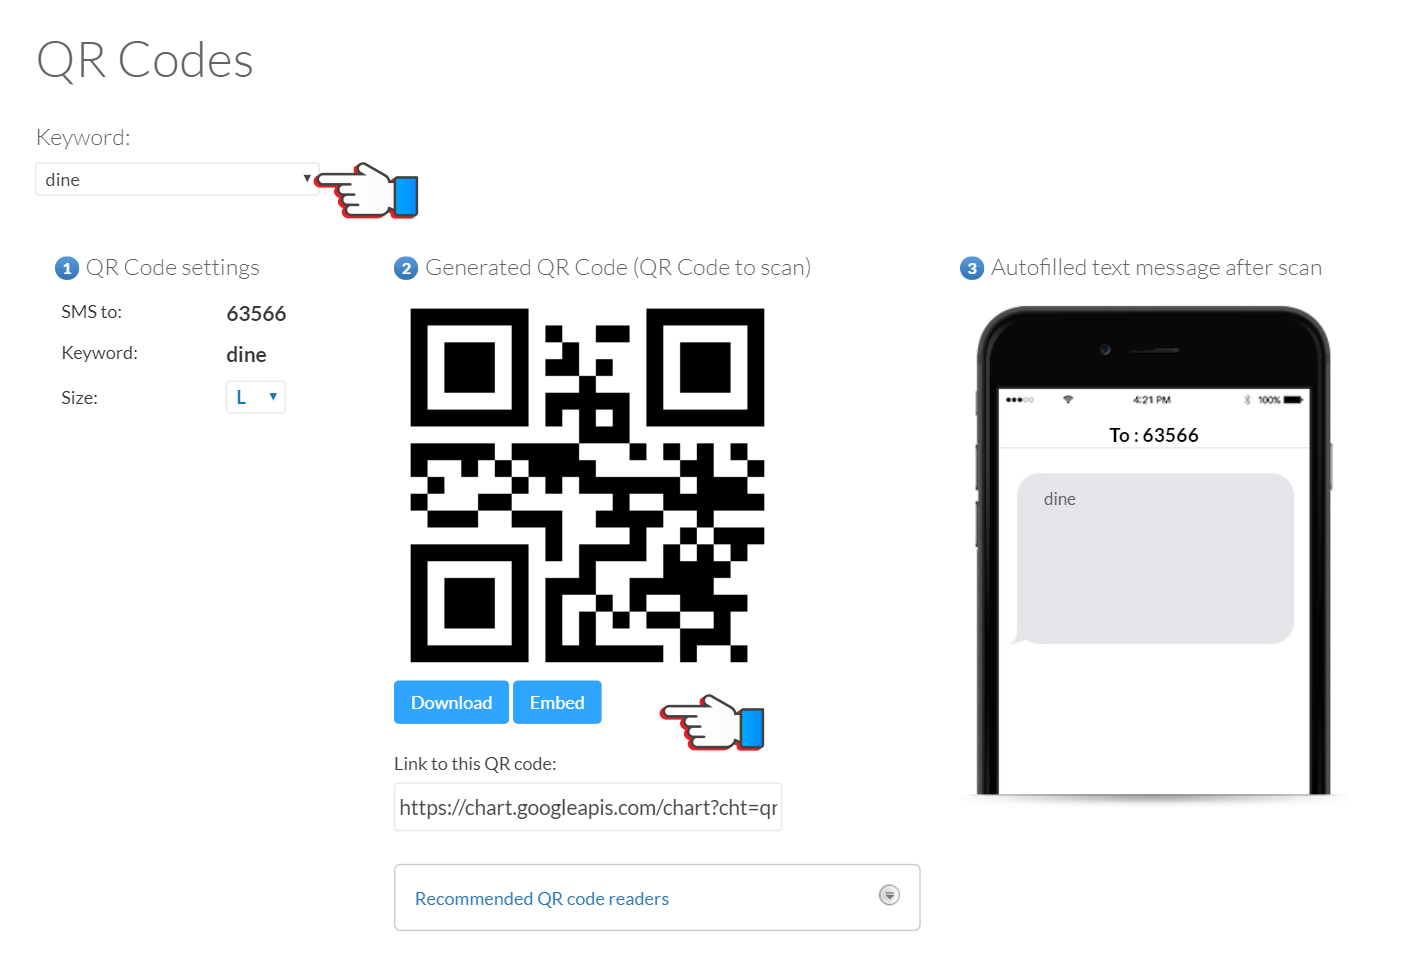 QR codes for text message campaigns via SMS and MMS